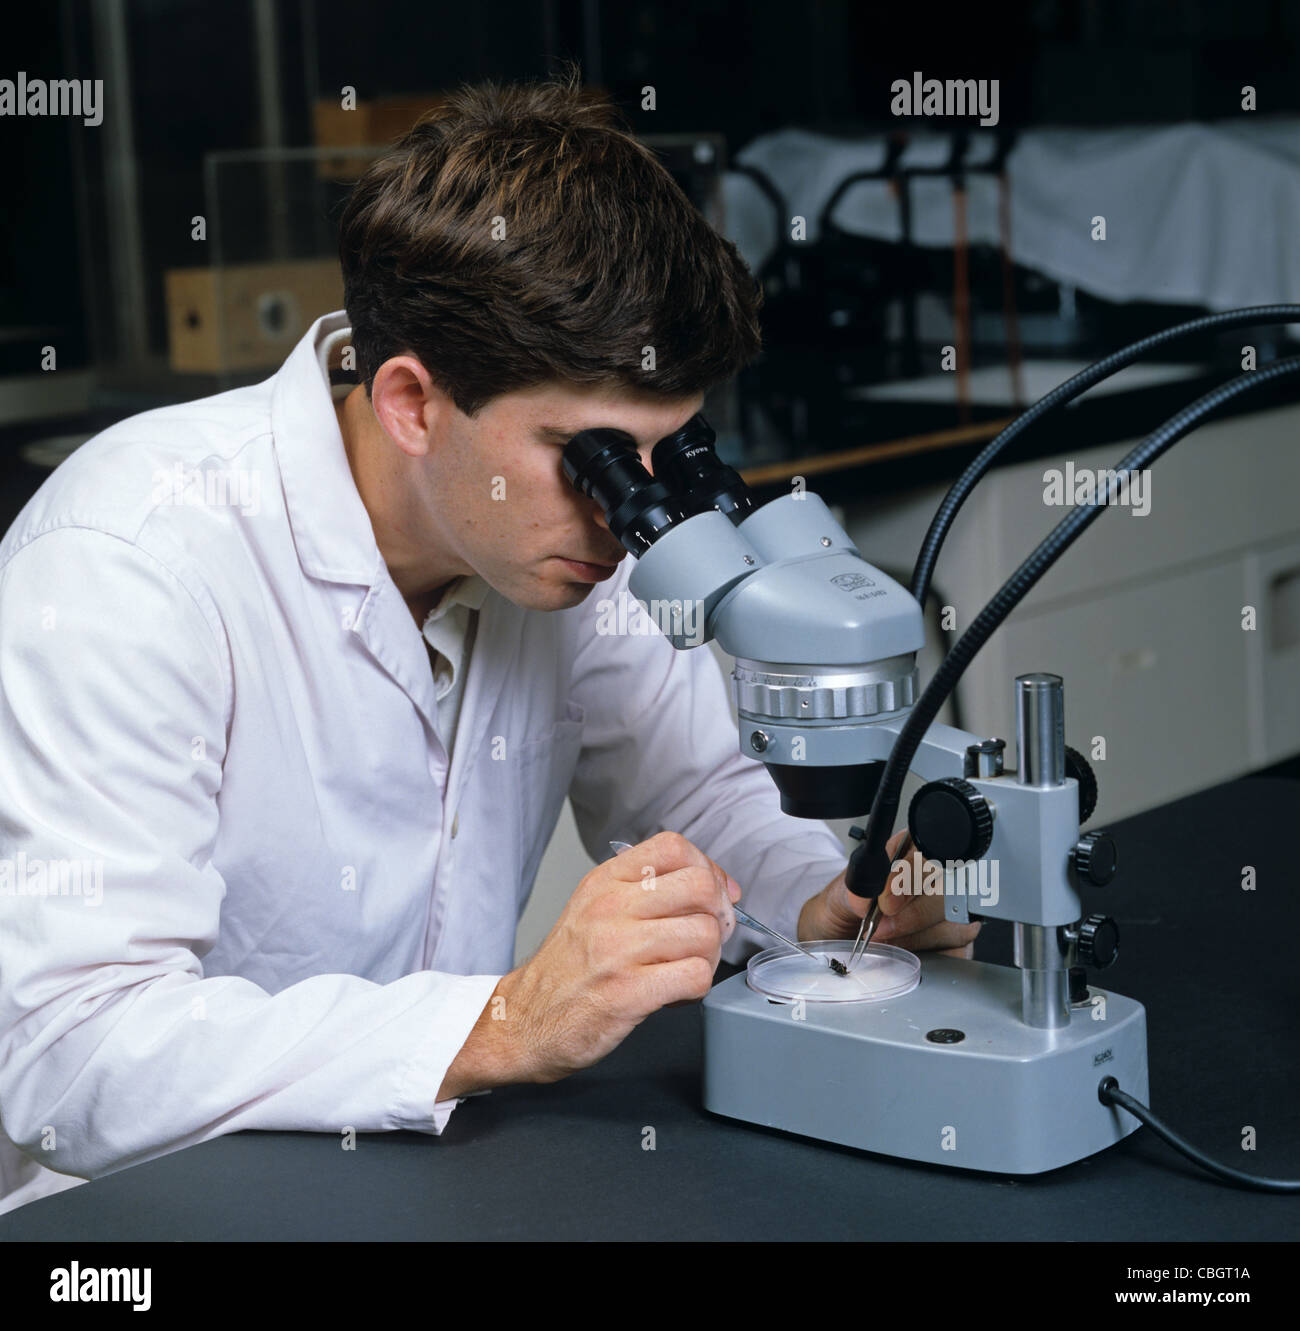 Researcher studying through low power binocular microscope in laboratory - Stock Image